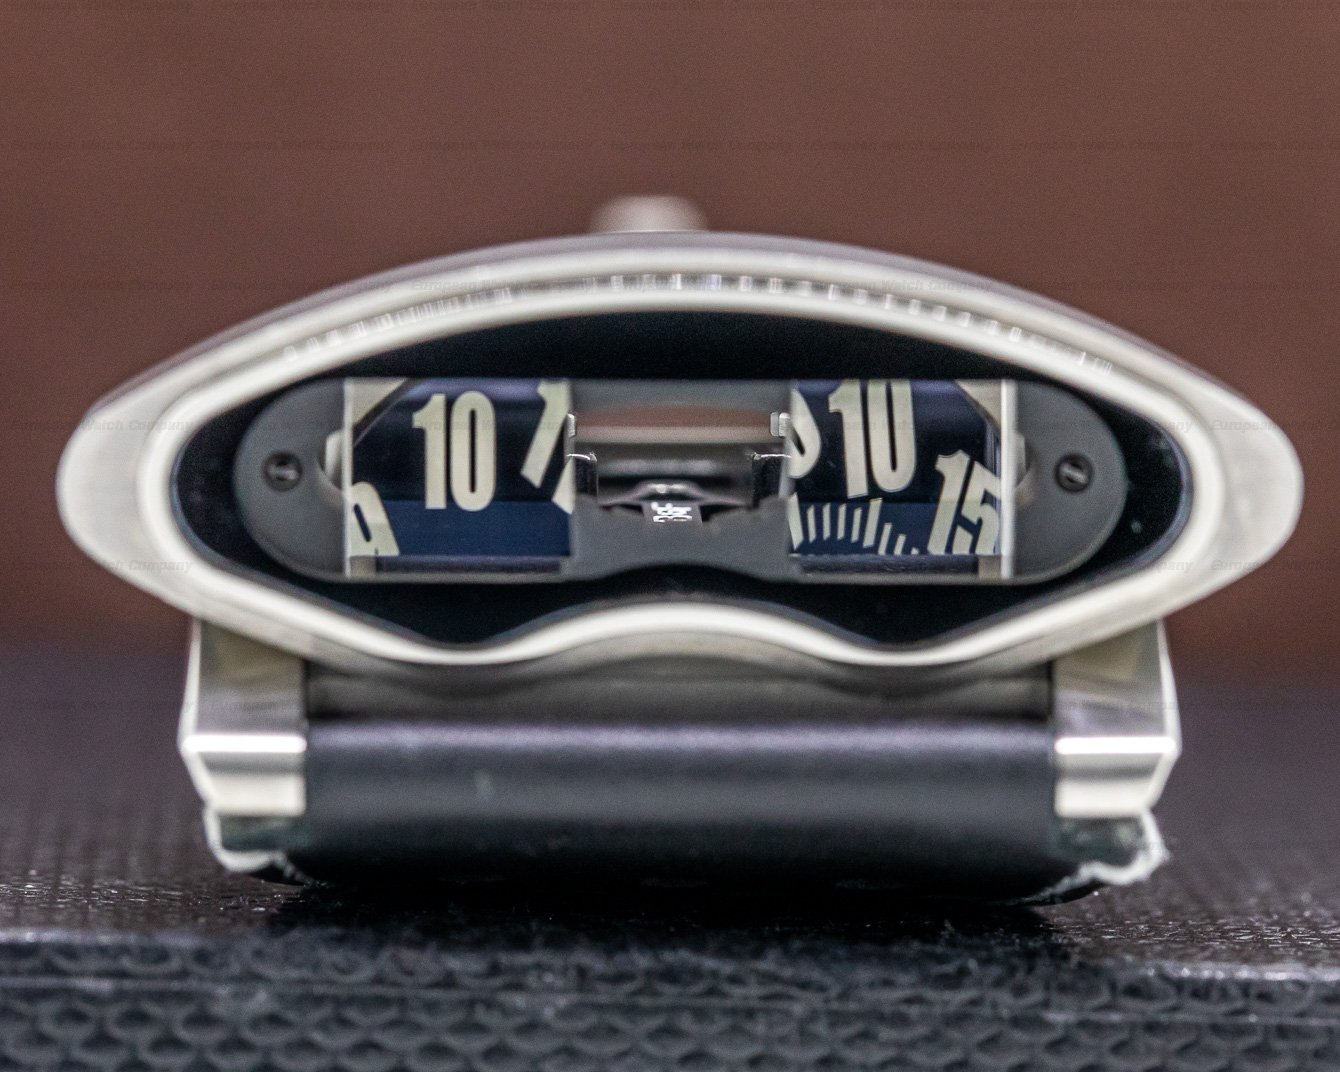 MB&F HMX Black HMX Black 10th Anniversary Horological Machine LIMITED